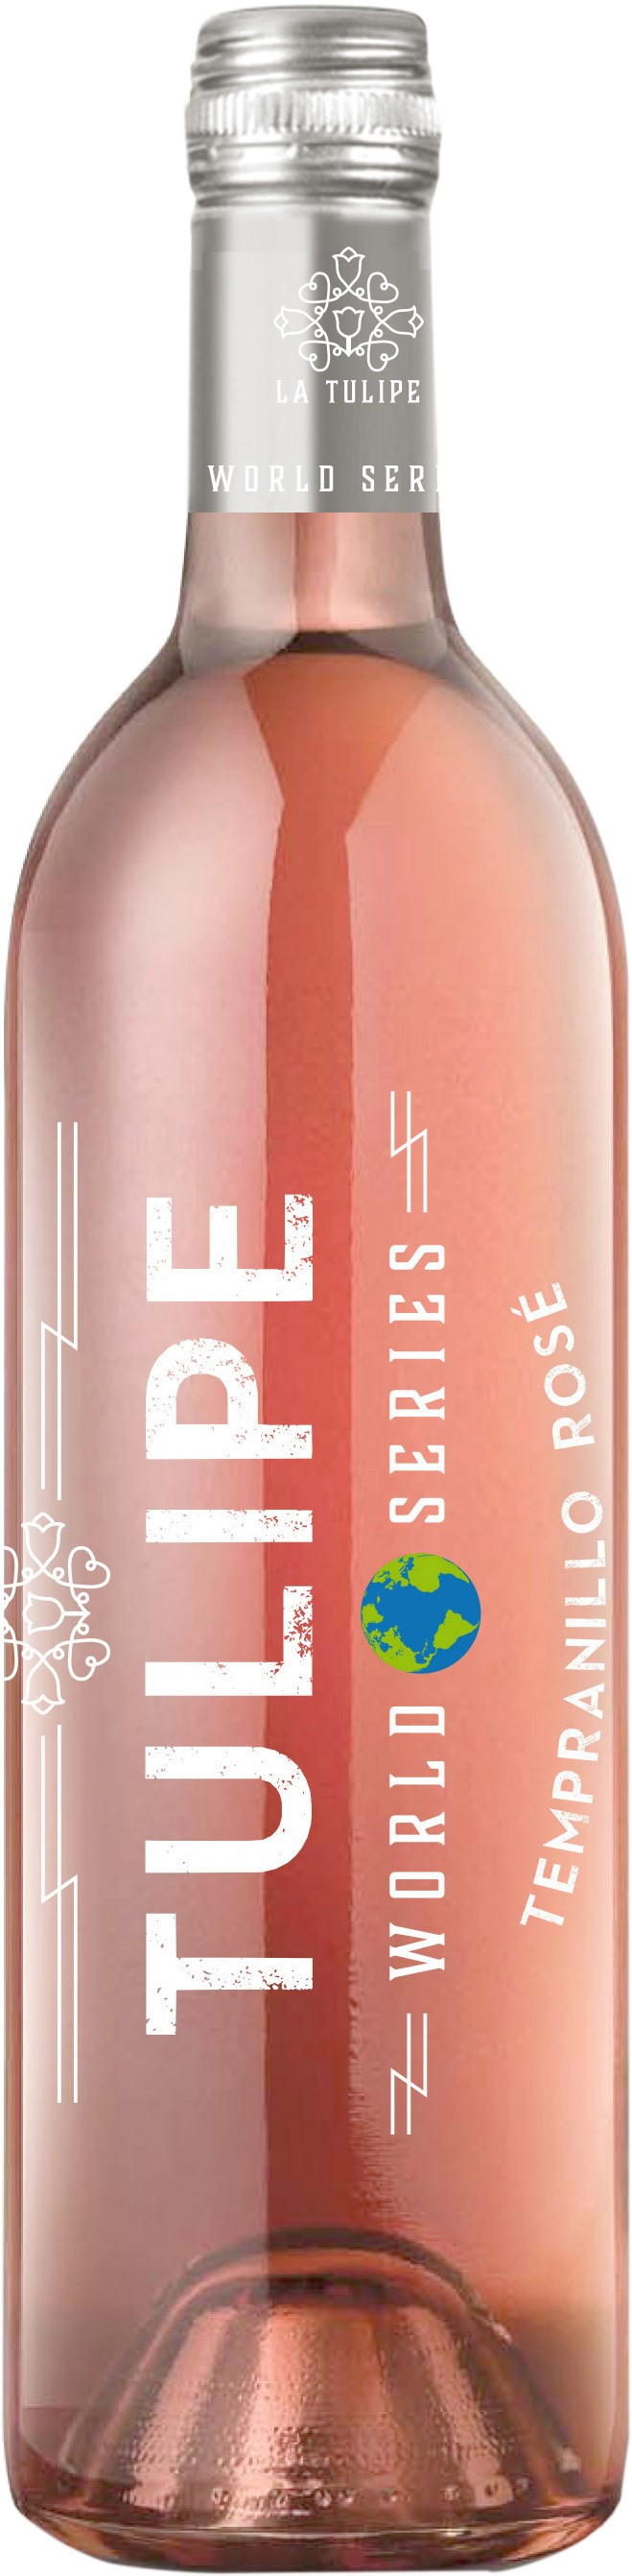 La Tulipe Tulipe World Series, Rosé